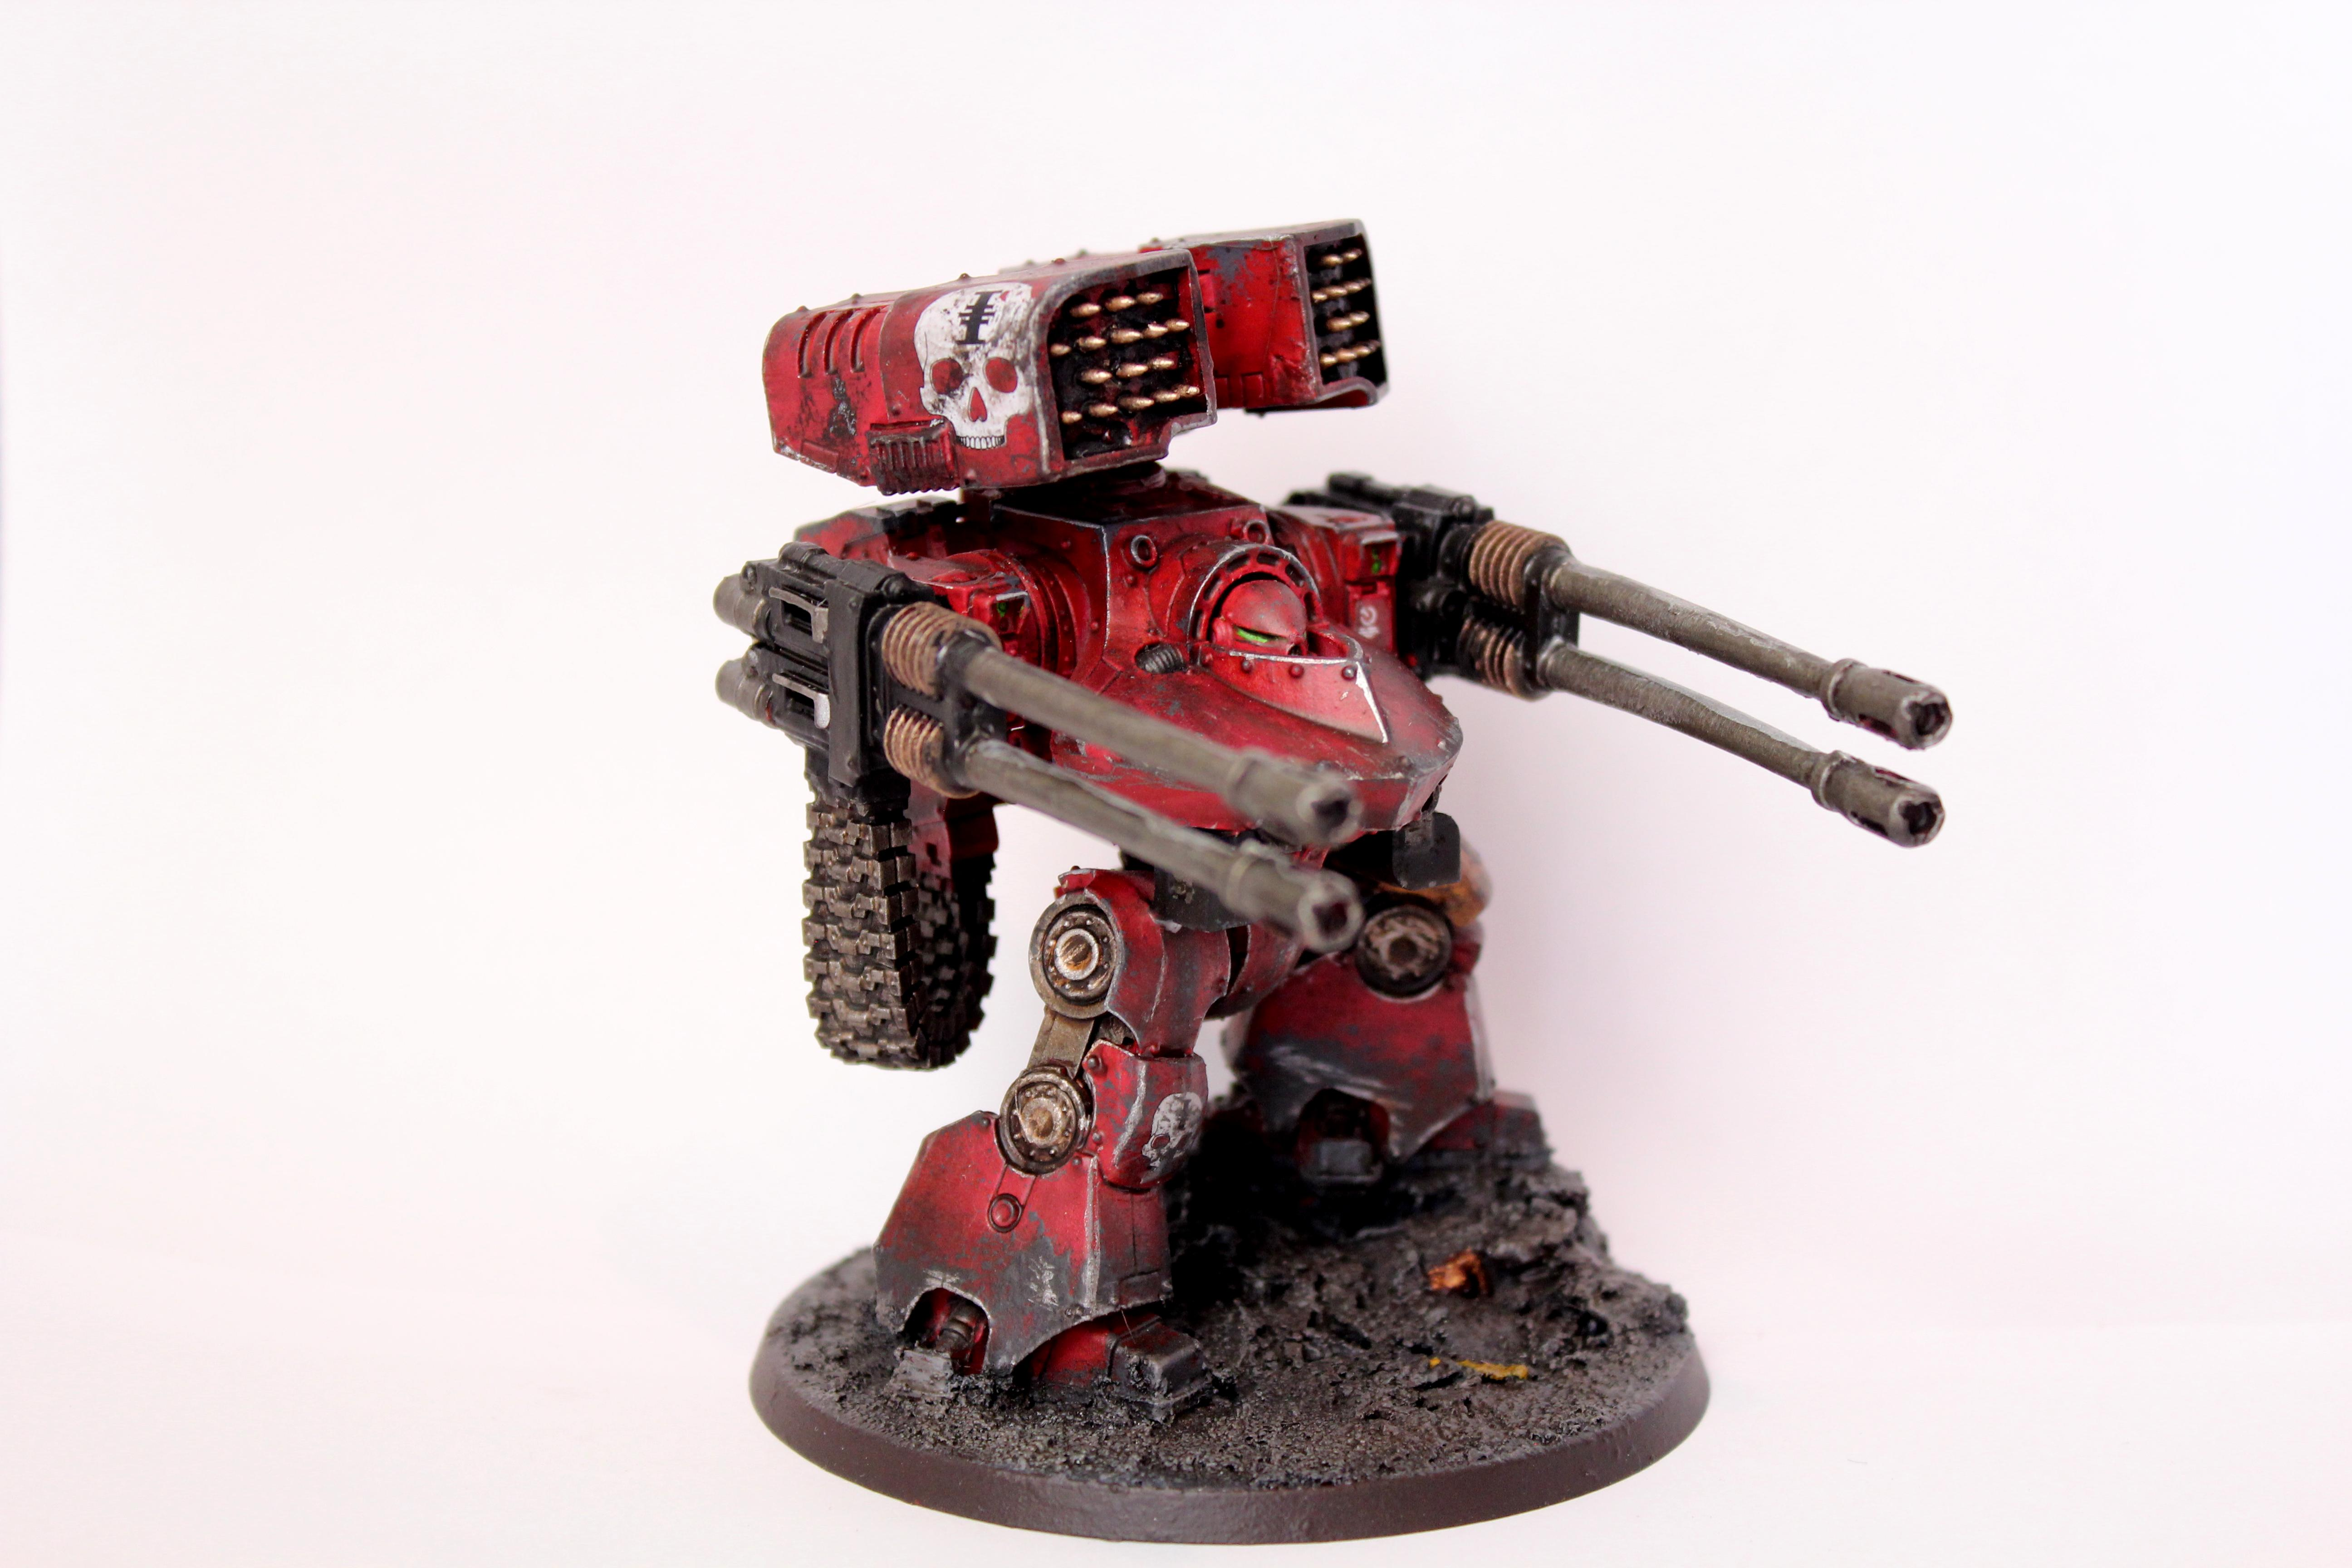 Deredeo, Dreadnought, Inquisition, Red Hunters, Space Marines, Warhammer 40,000